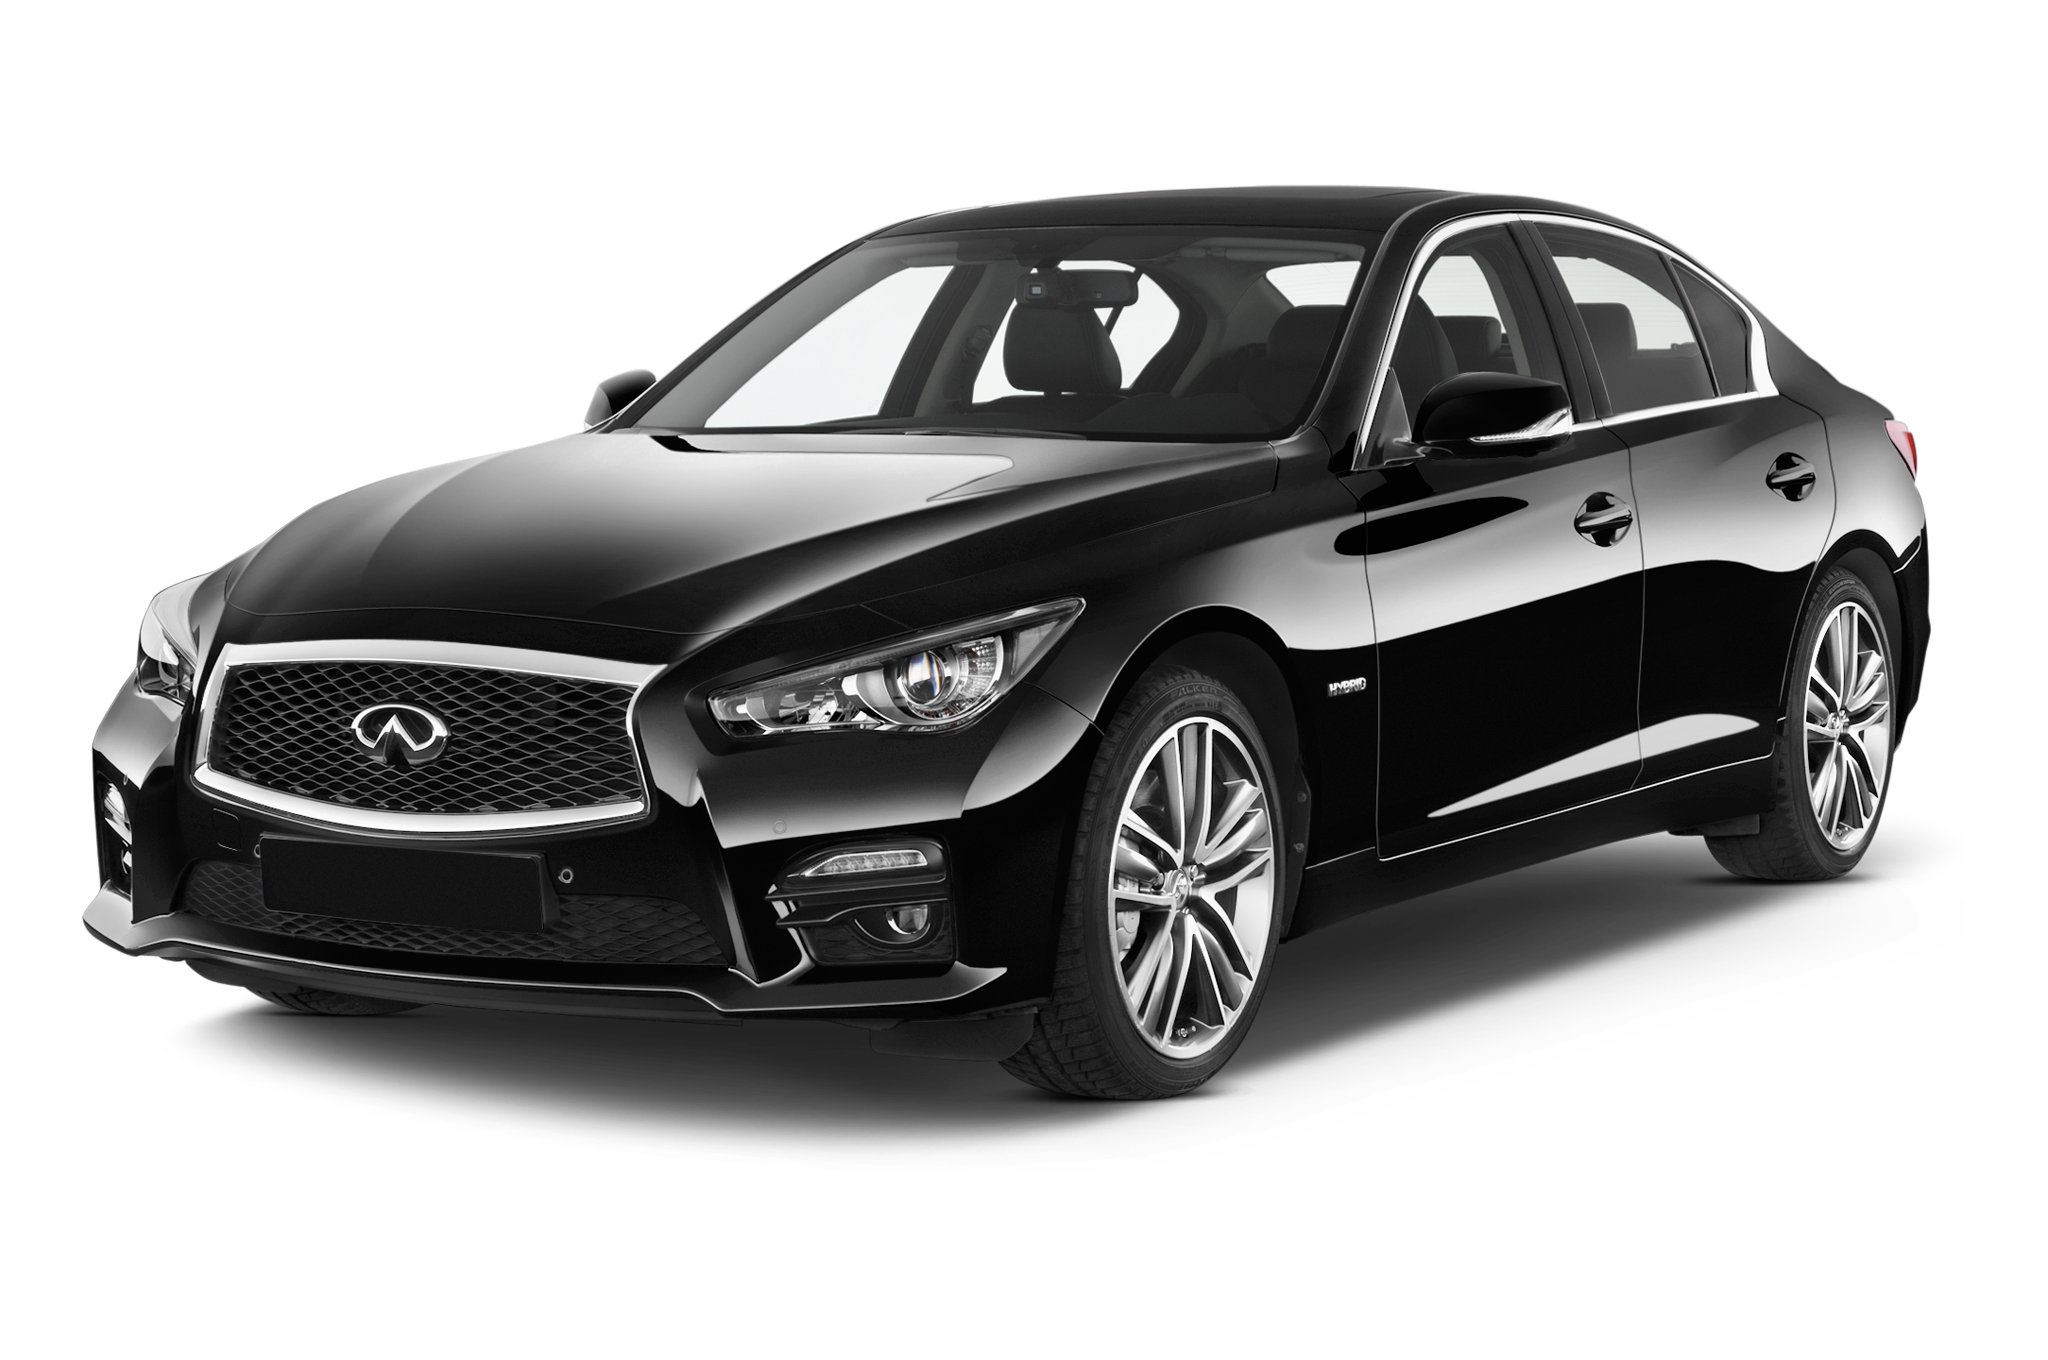 2015 infiniti q50 hybrid reviews and rating motortrend. Black Bedroom Furniture Sets. Home Design Ideas